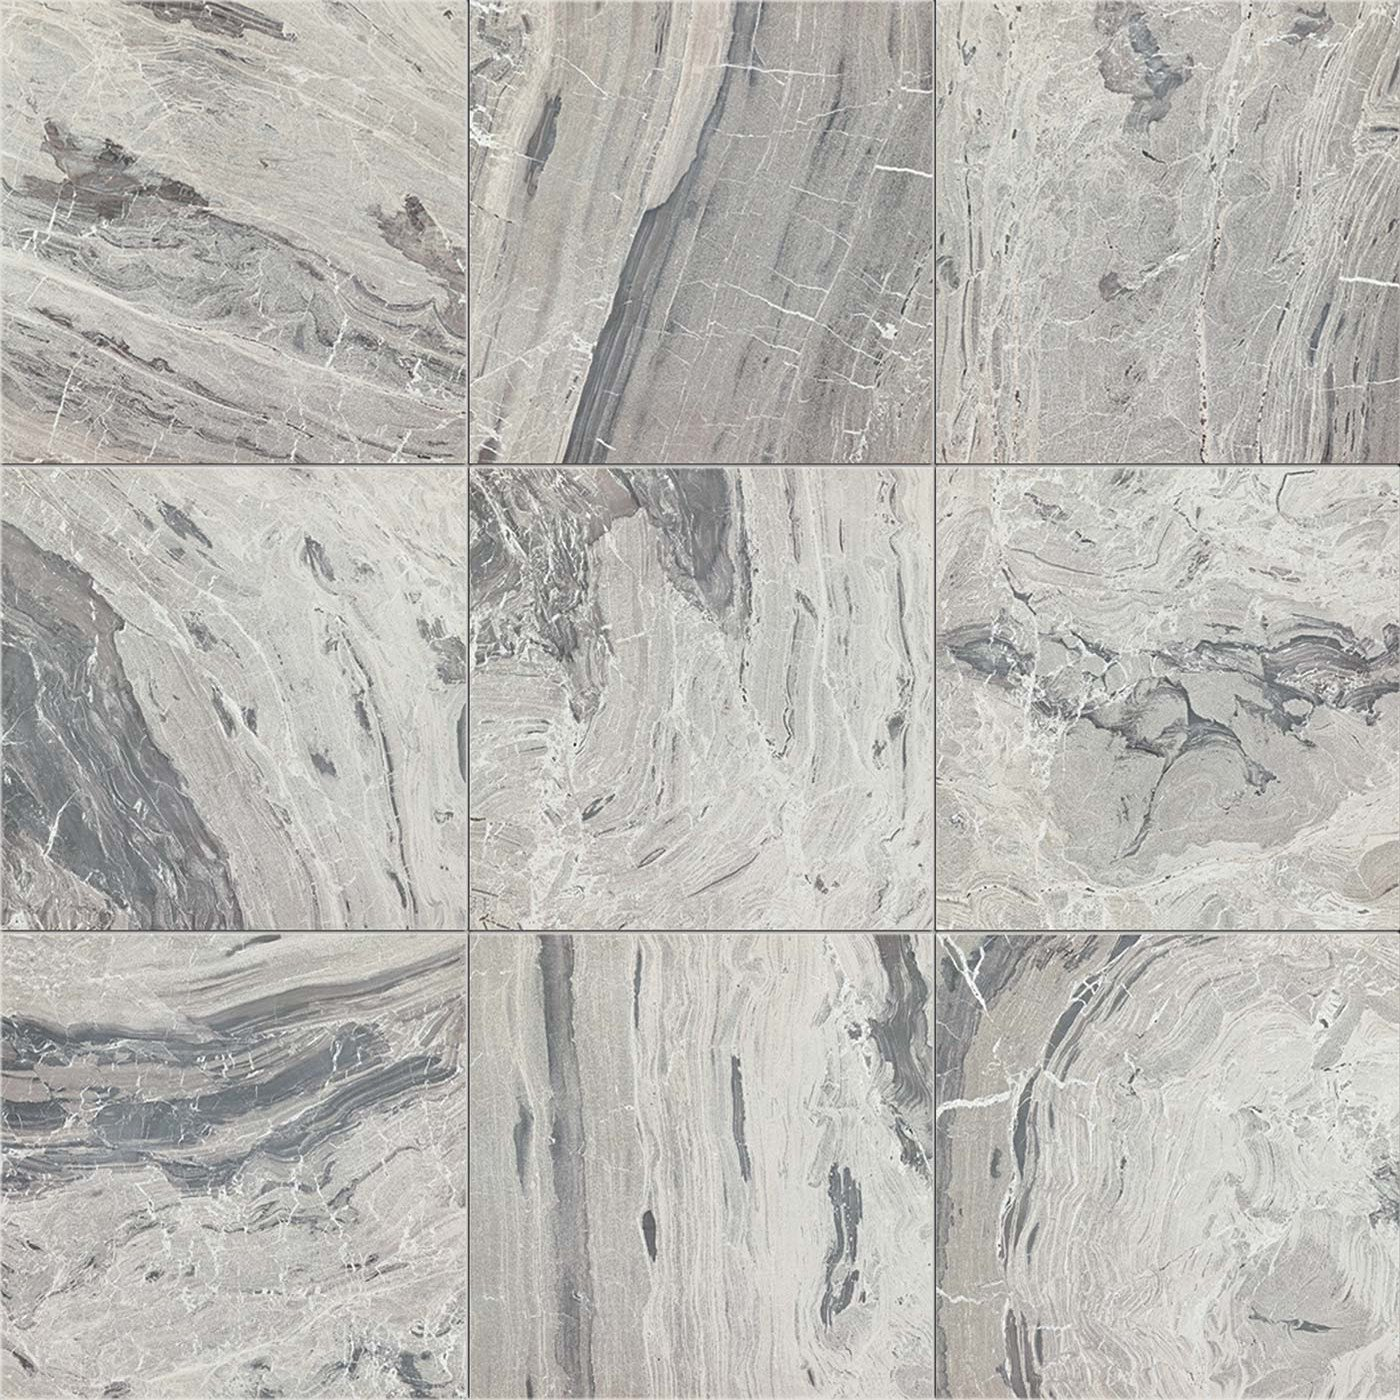 European Tiles Marble Grey 60x120 Gloss Porcelain Tile Stone Effect Tiles Bathroomsbydesign